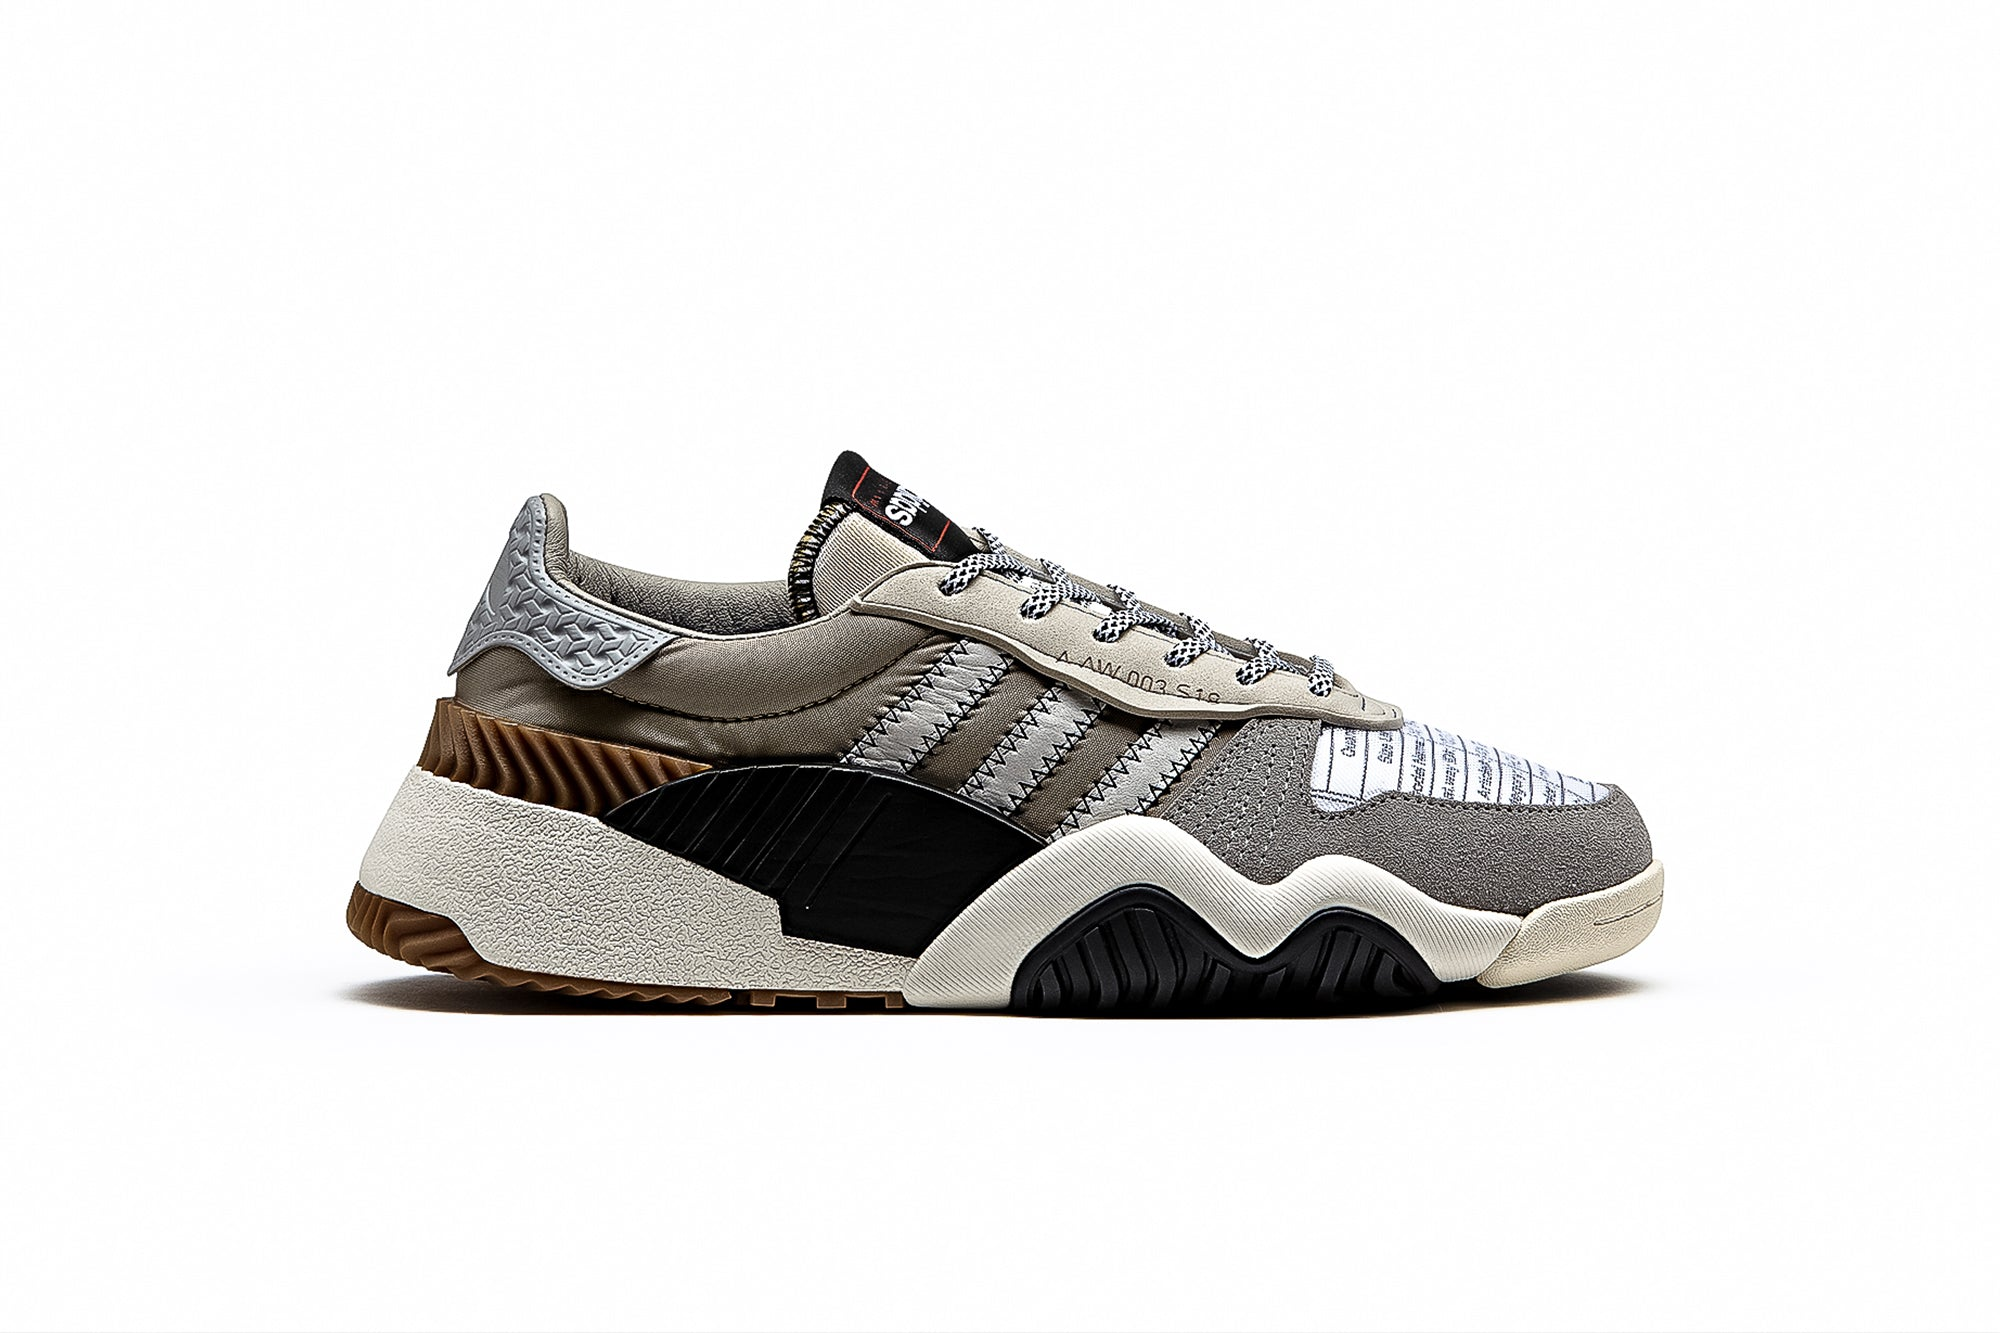 3118ee9f2eac2 ADIDAS X ALEXANDER WANG TURNOUT TRAINER – PACKER SHOES